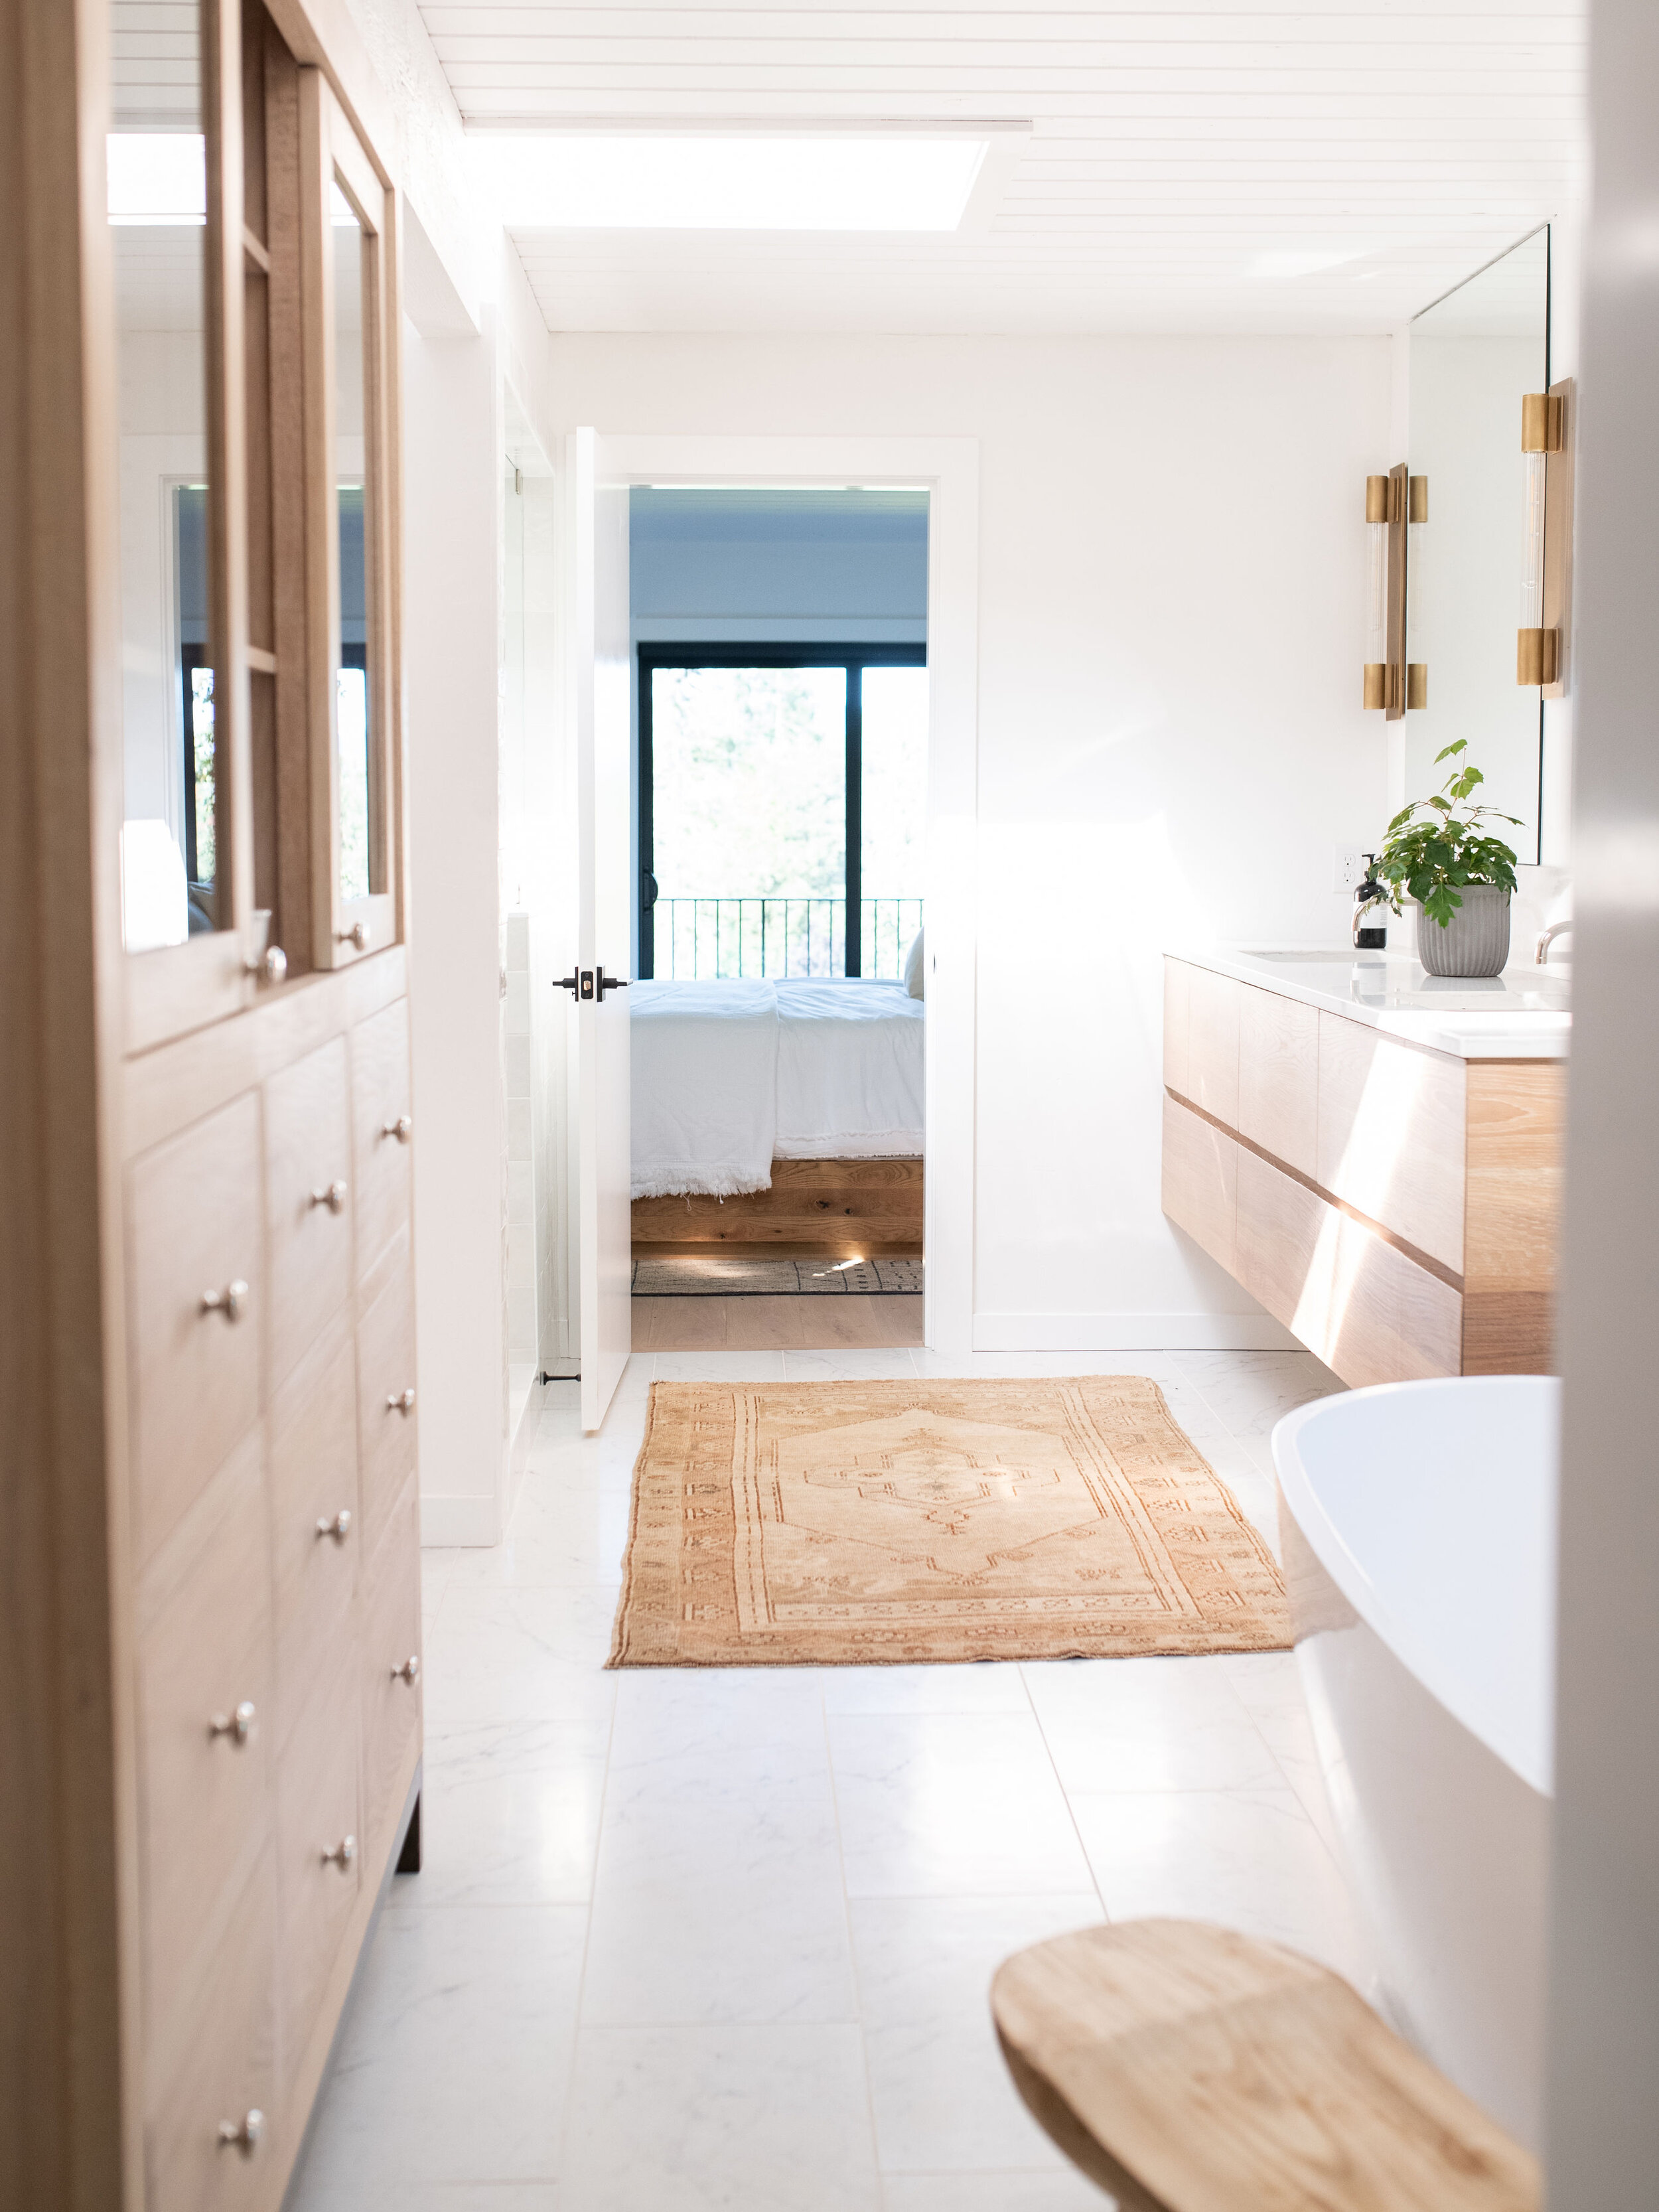 This golden-hued rug ties the natural wood tones of this master bath together perfectly